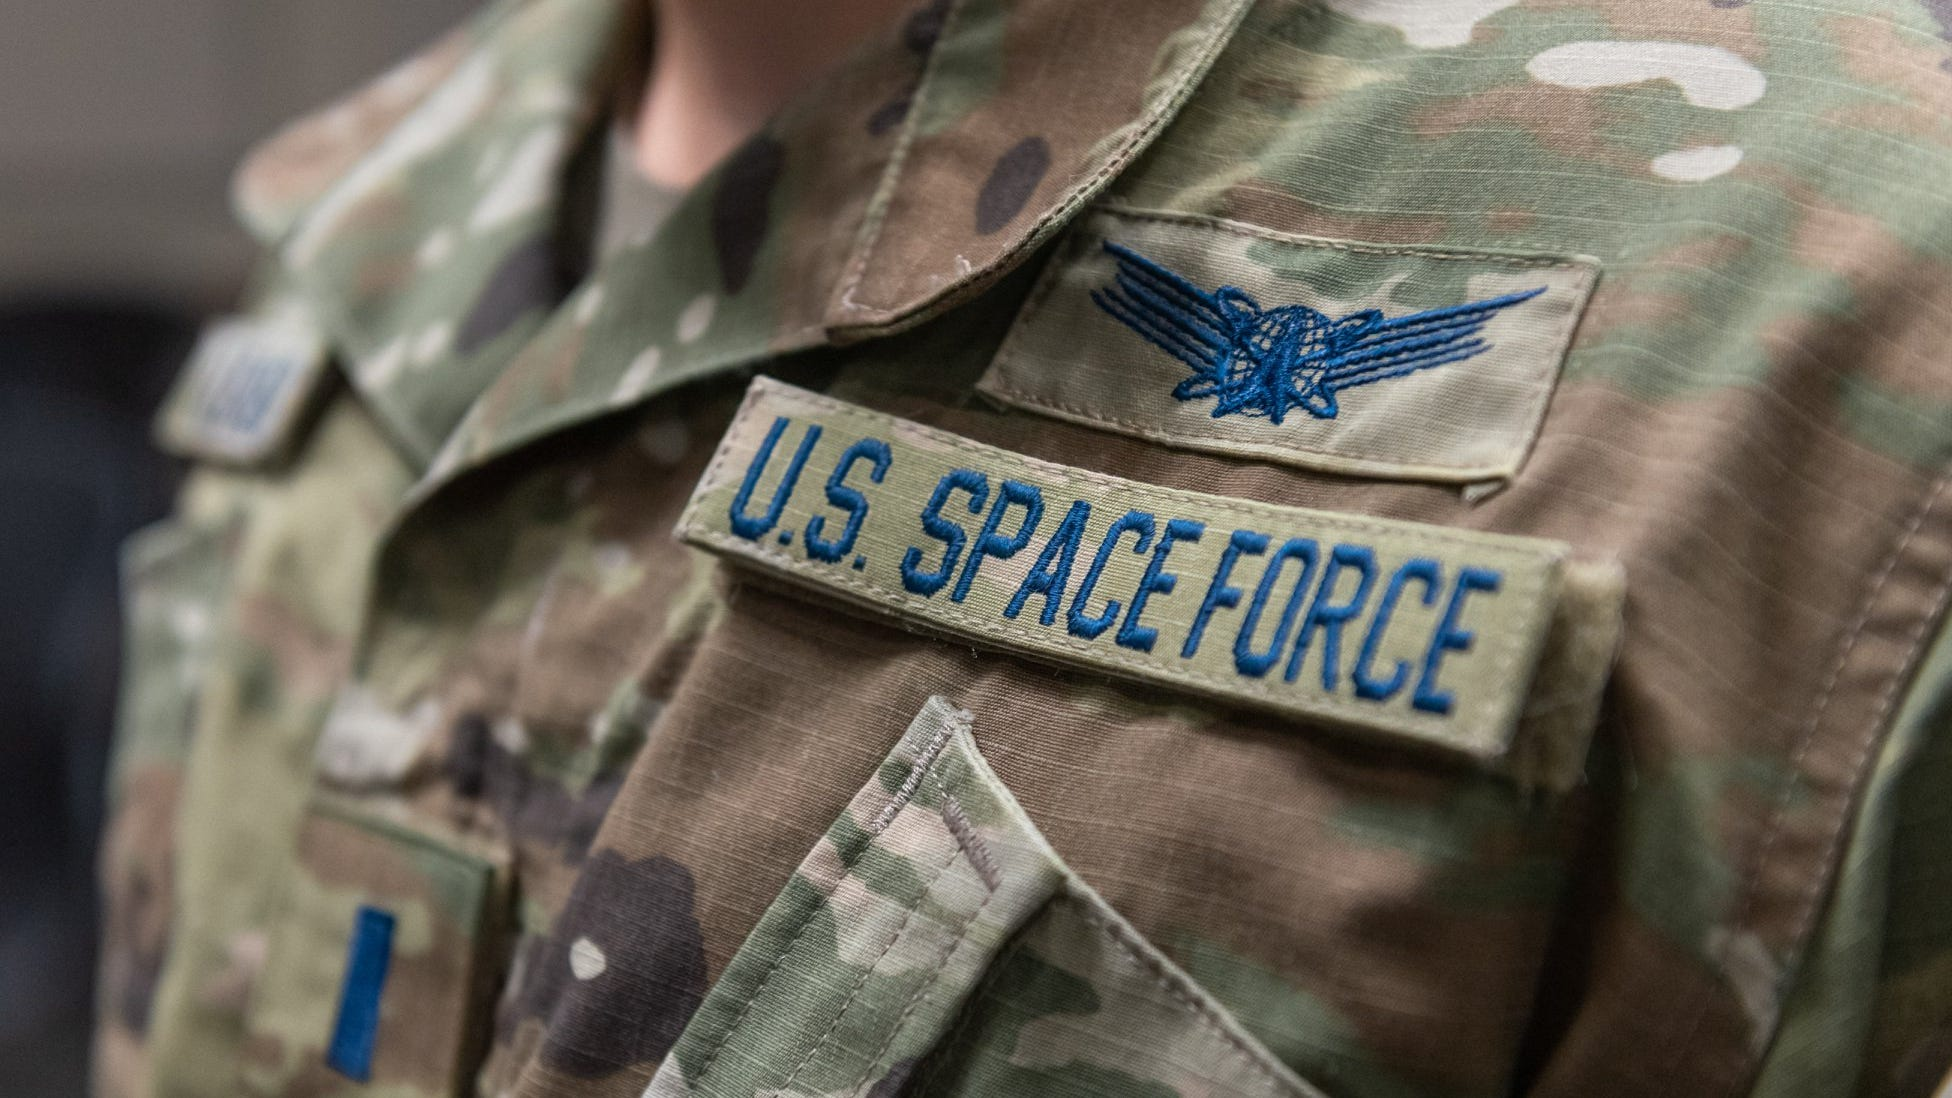 An airman is sworn into the Space Force by his com